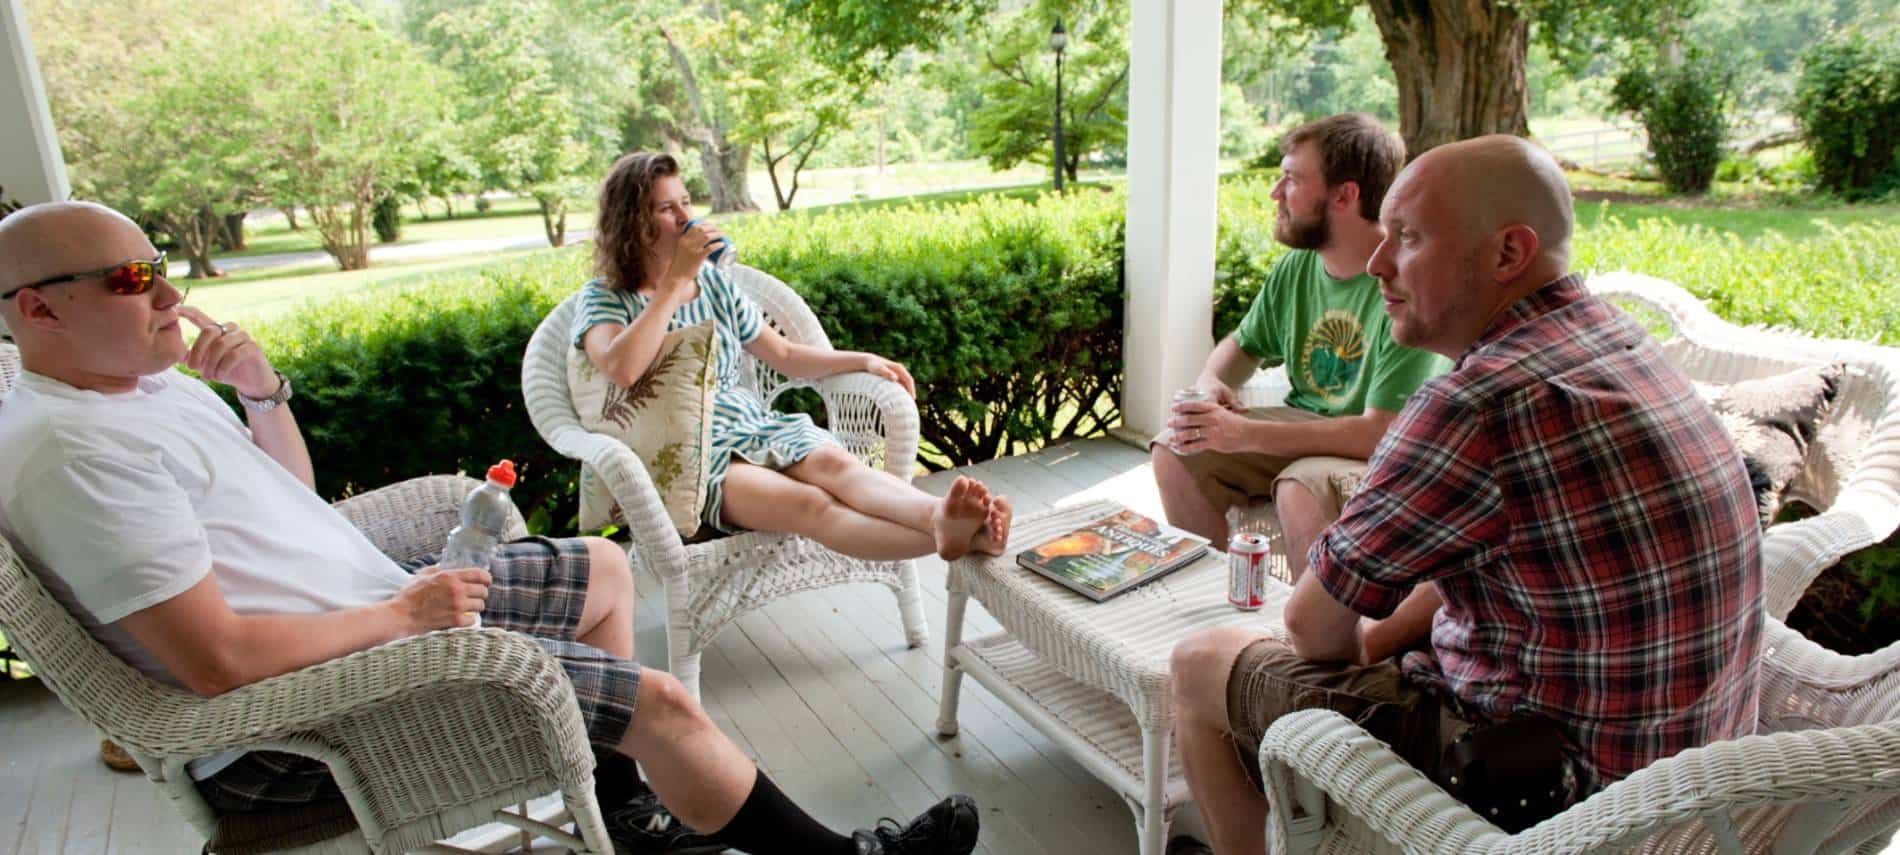 Four people sitting on white wicker patio furniture on front porch surrounded by green shrubs